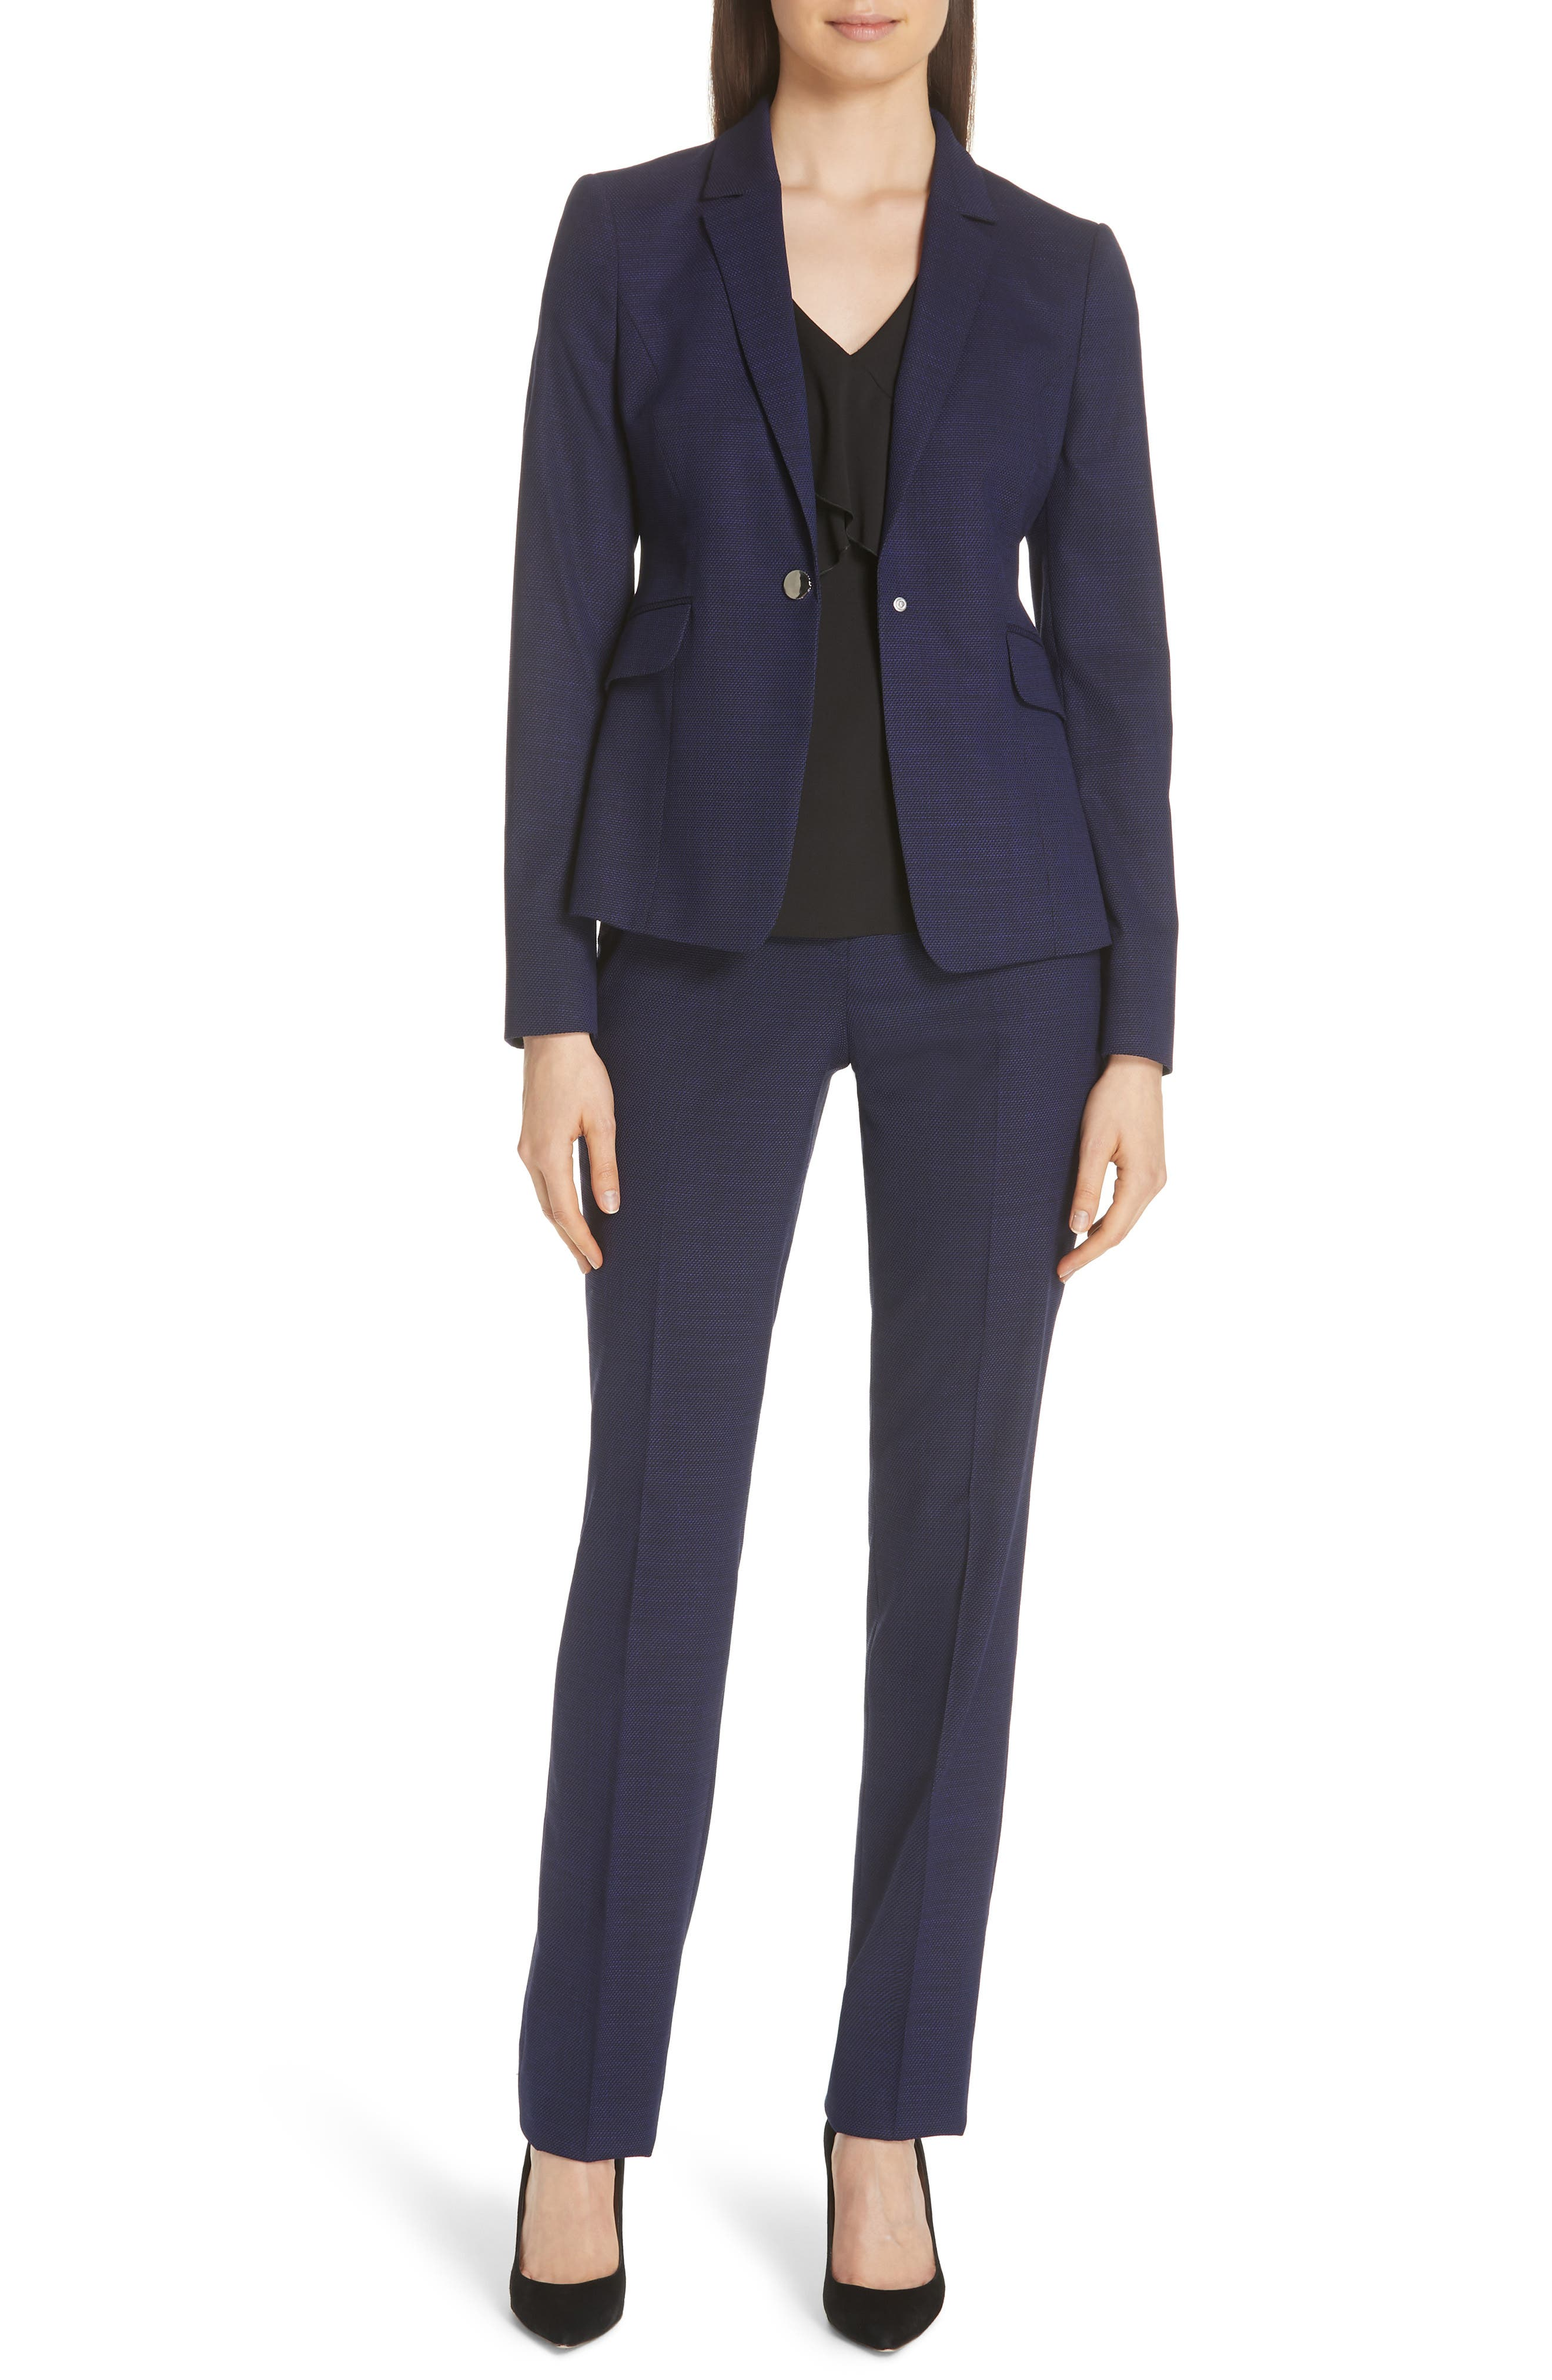 Jibalena Mini Glencheck Suit Jacket,                             Alternate thumbnail 6, color,                             Deep Lilac Fantasy